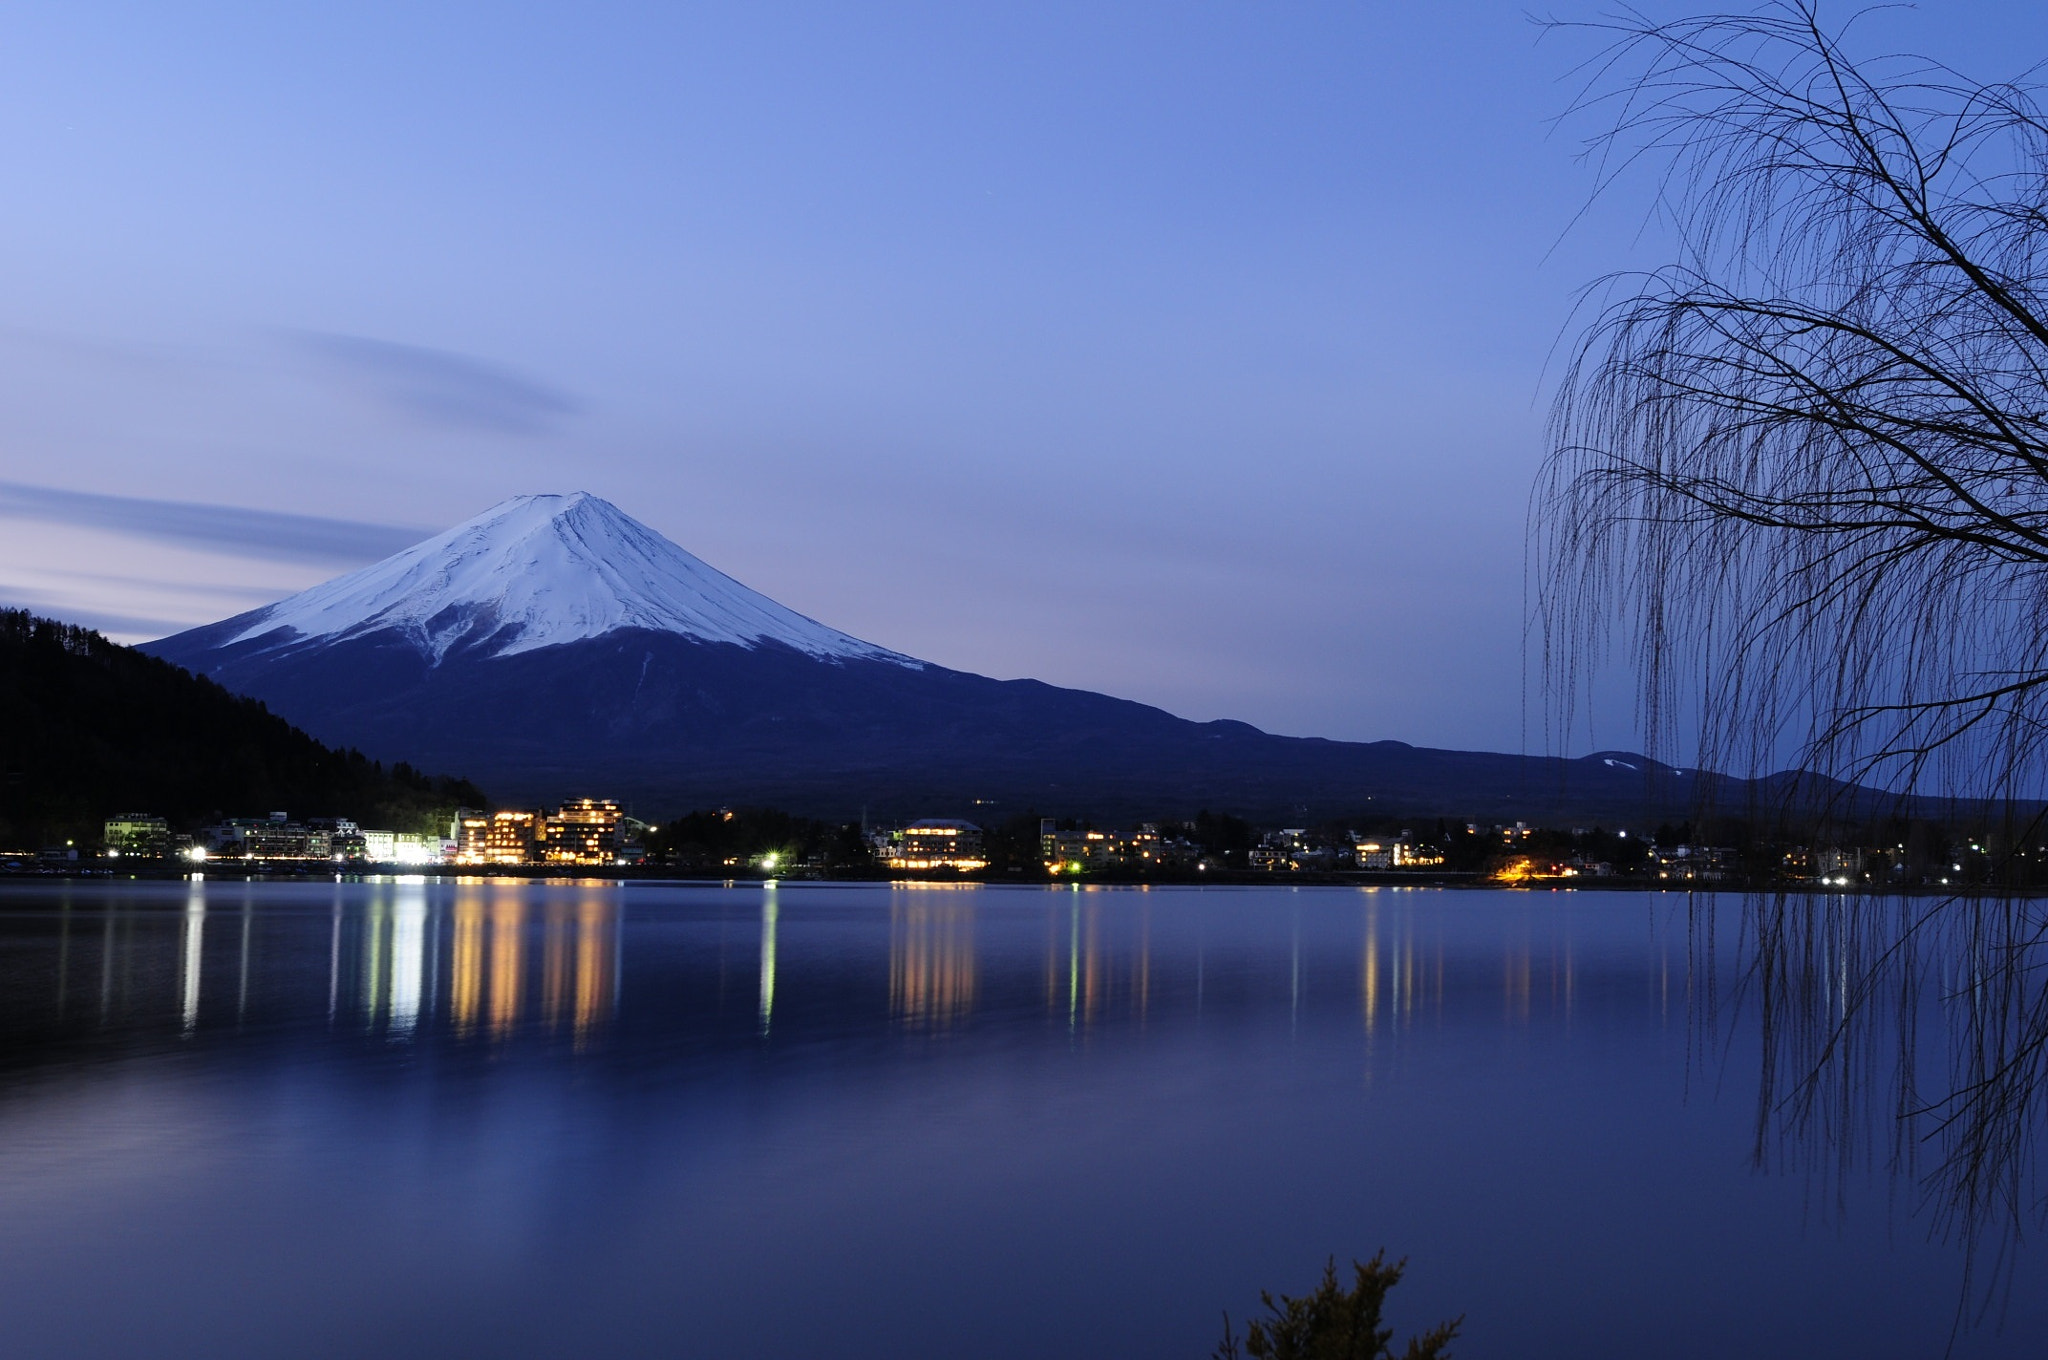 Photograph Mt.Fuji by Keith_TT on 500px